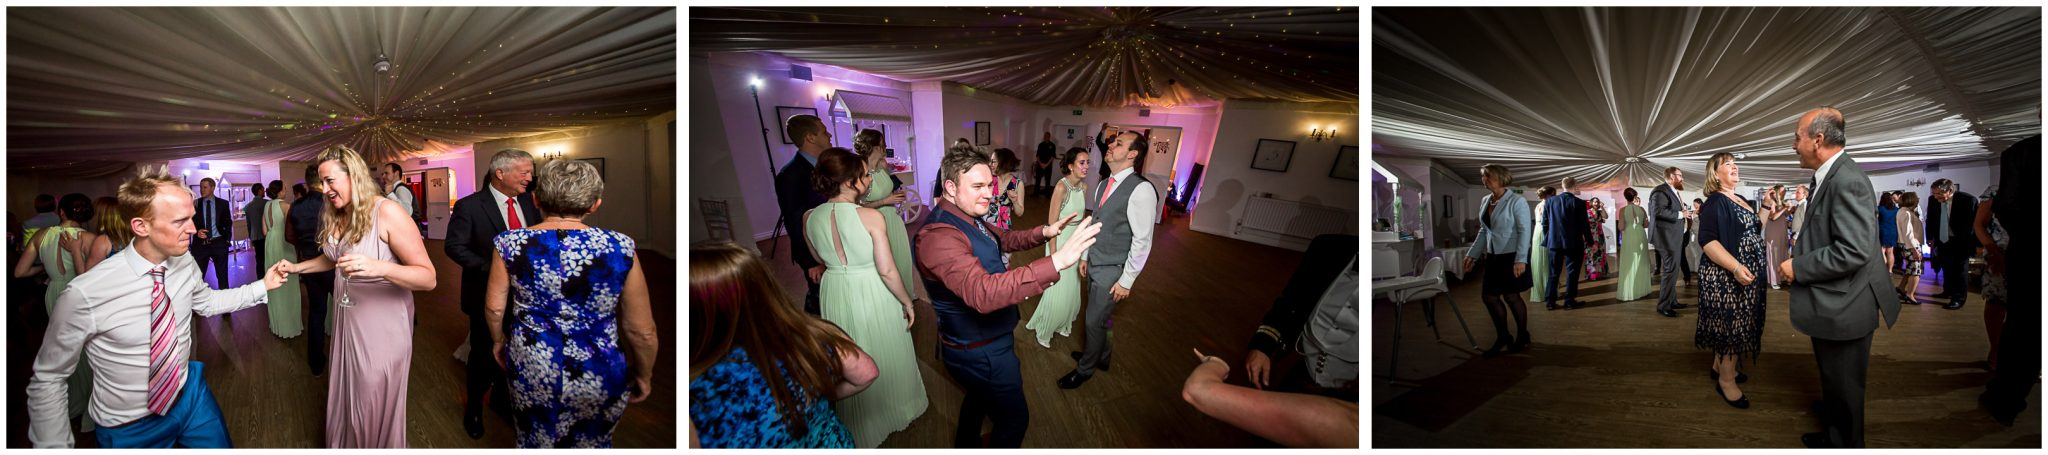 Wedding guests on the dancefloor